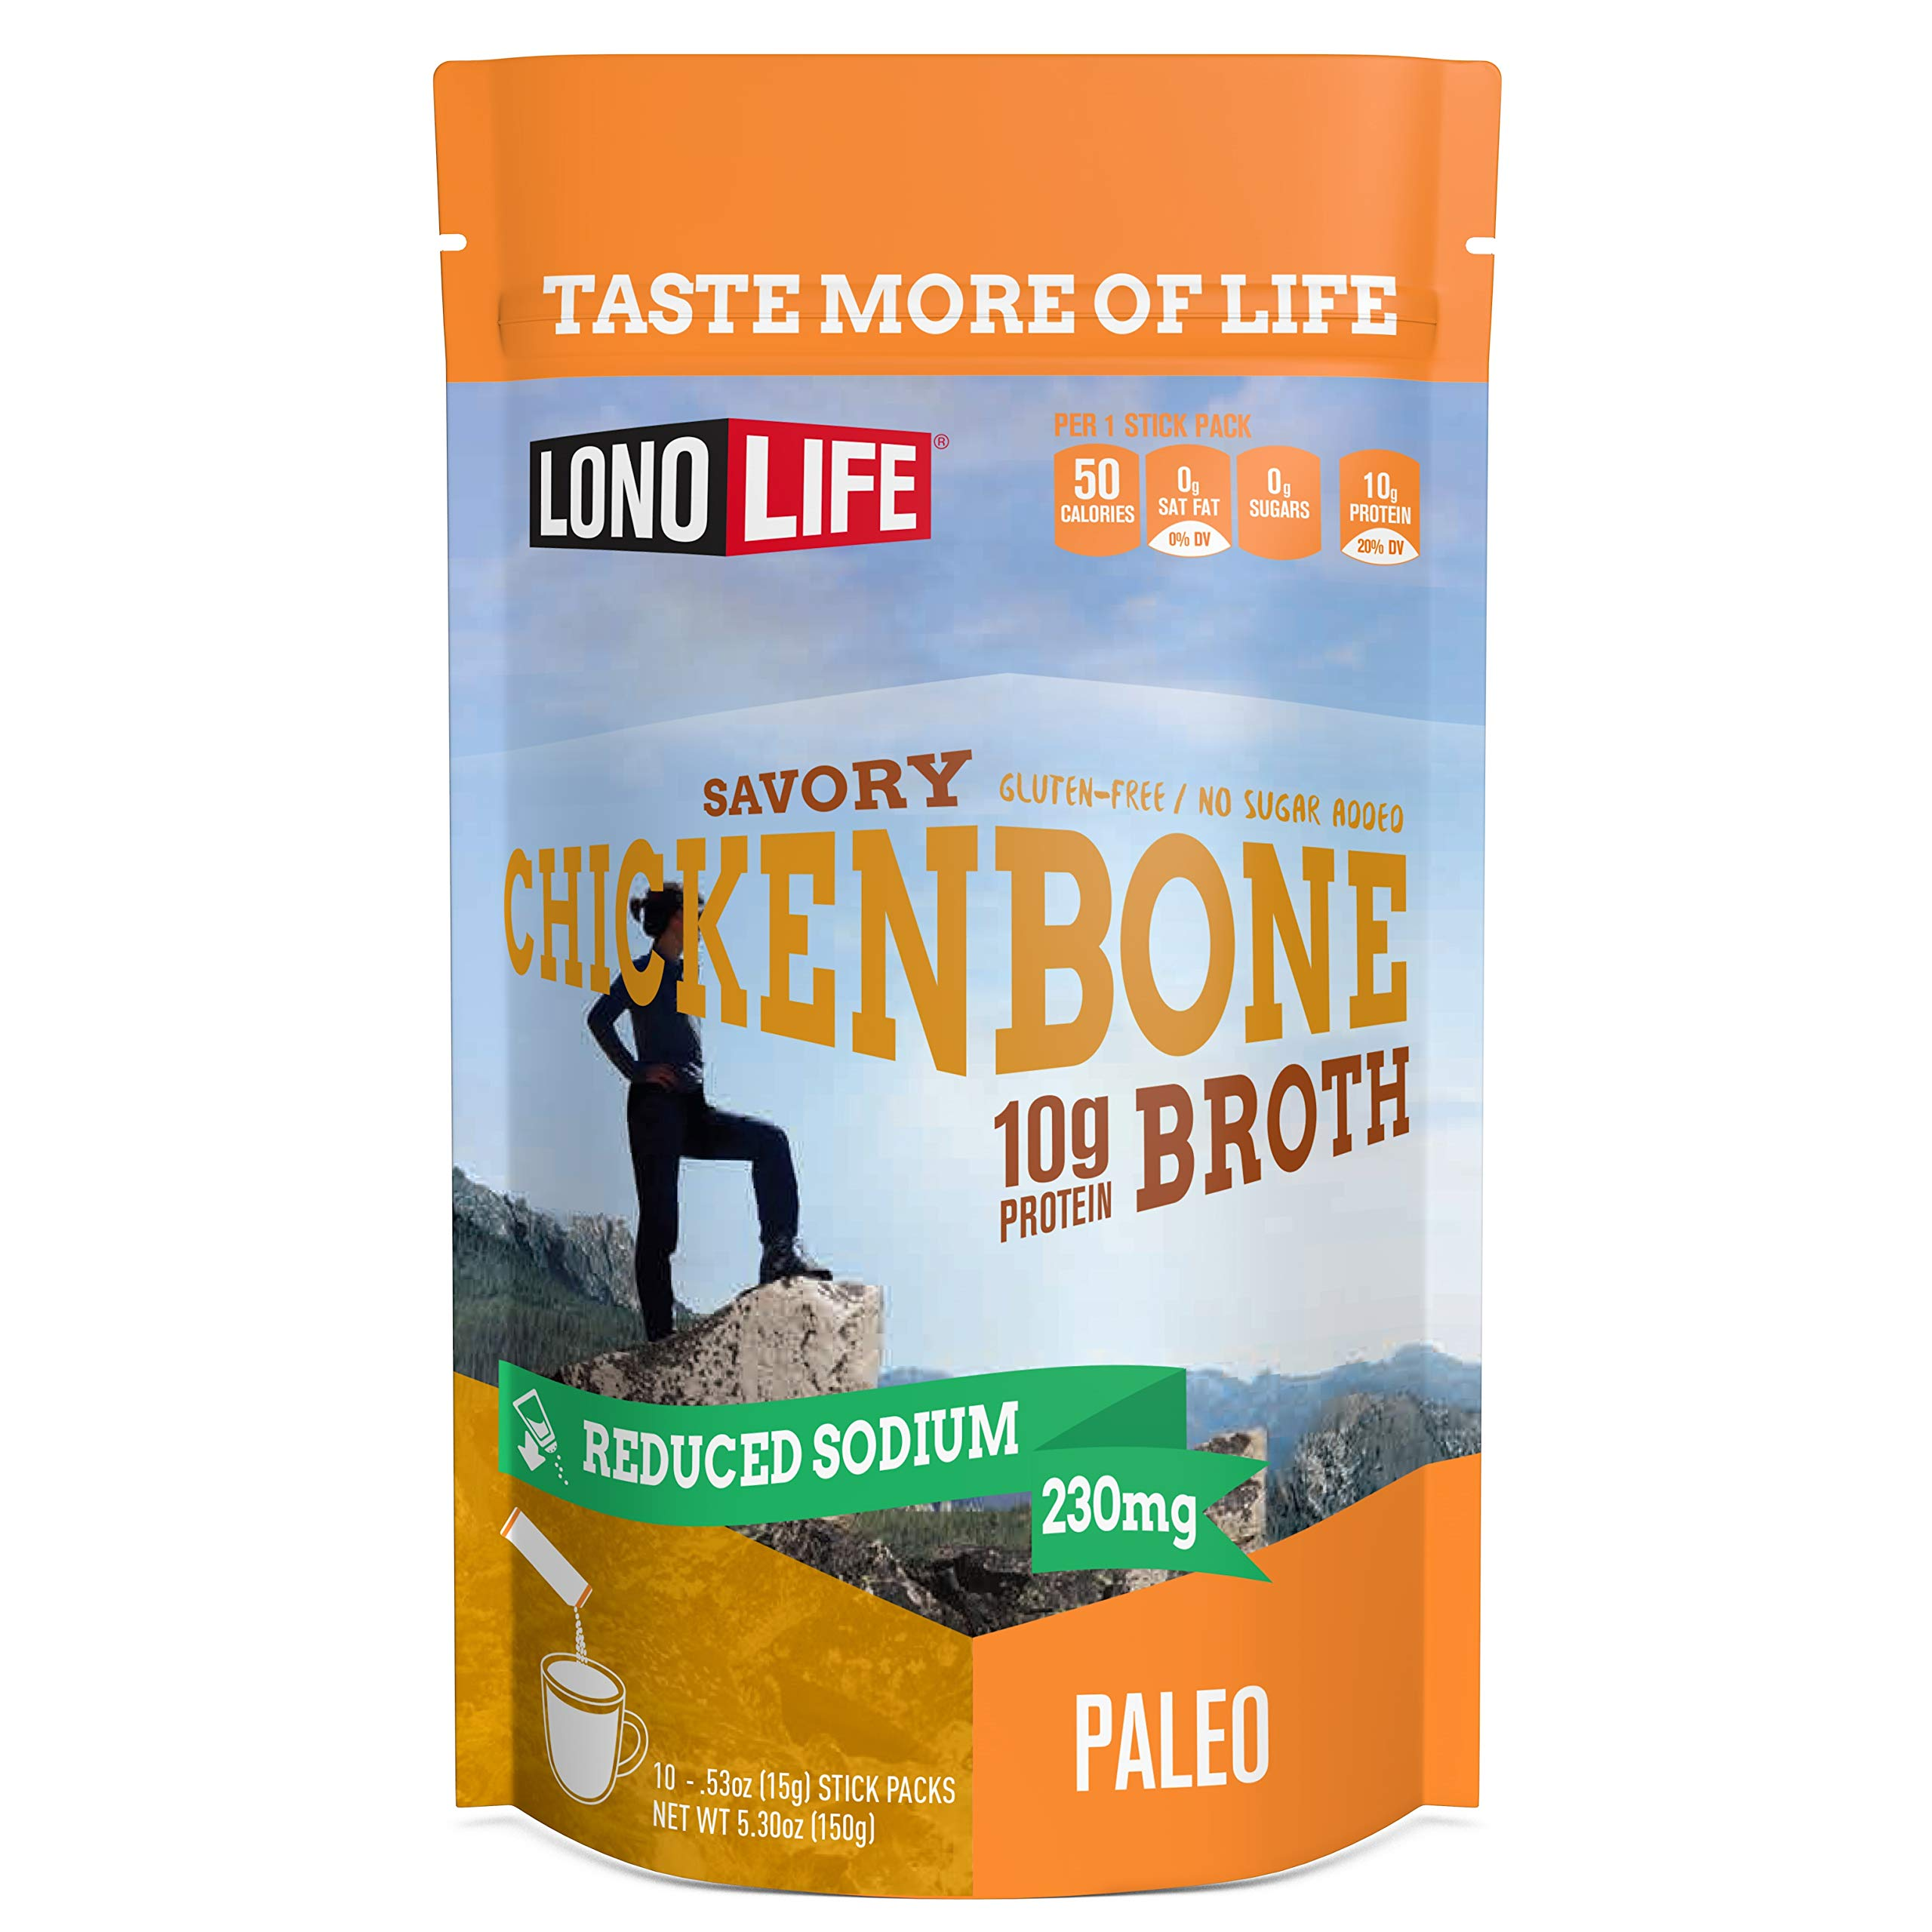 LonoLife Reduced Sodium Chicken Bone Broth Powder with 10g Protein, Paleo and Keto Friendly, Stick Packs, 10 Count